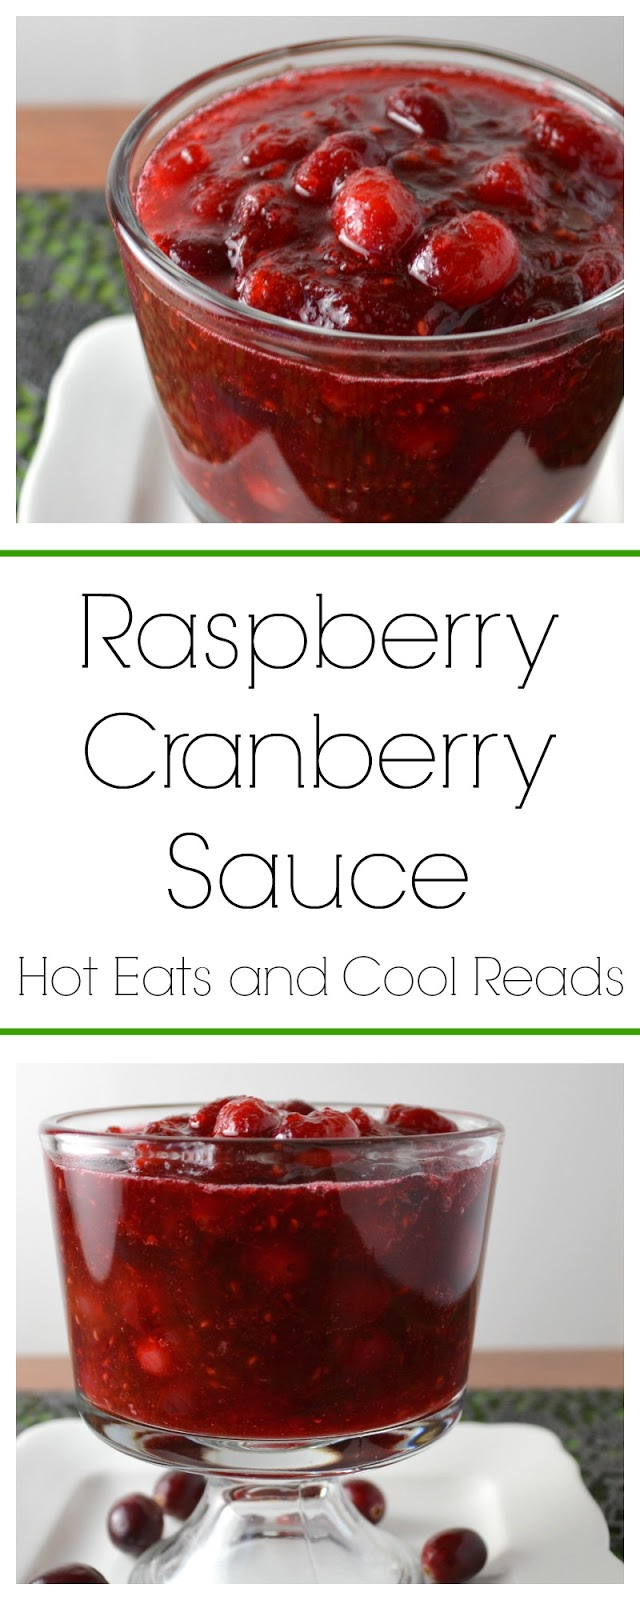 This cranberry sauce has a delicious twist using raspberries! SO amazing and perfect for your Thanksgiving or Christmas menu! This will be a new family favorite! Tried and true holiday comfort food!